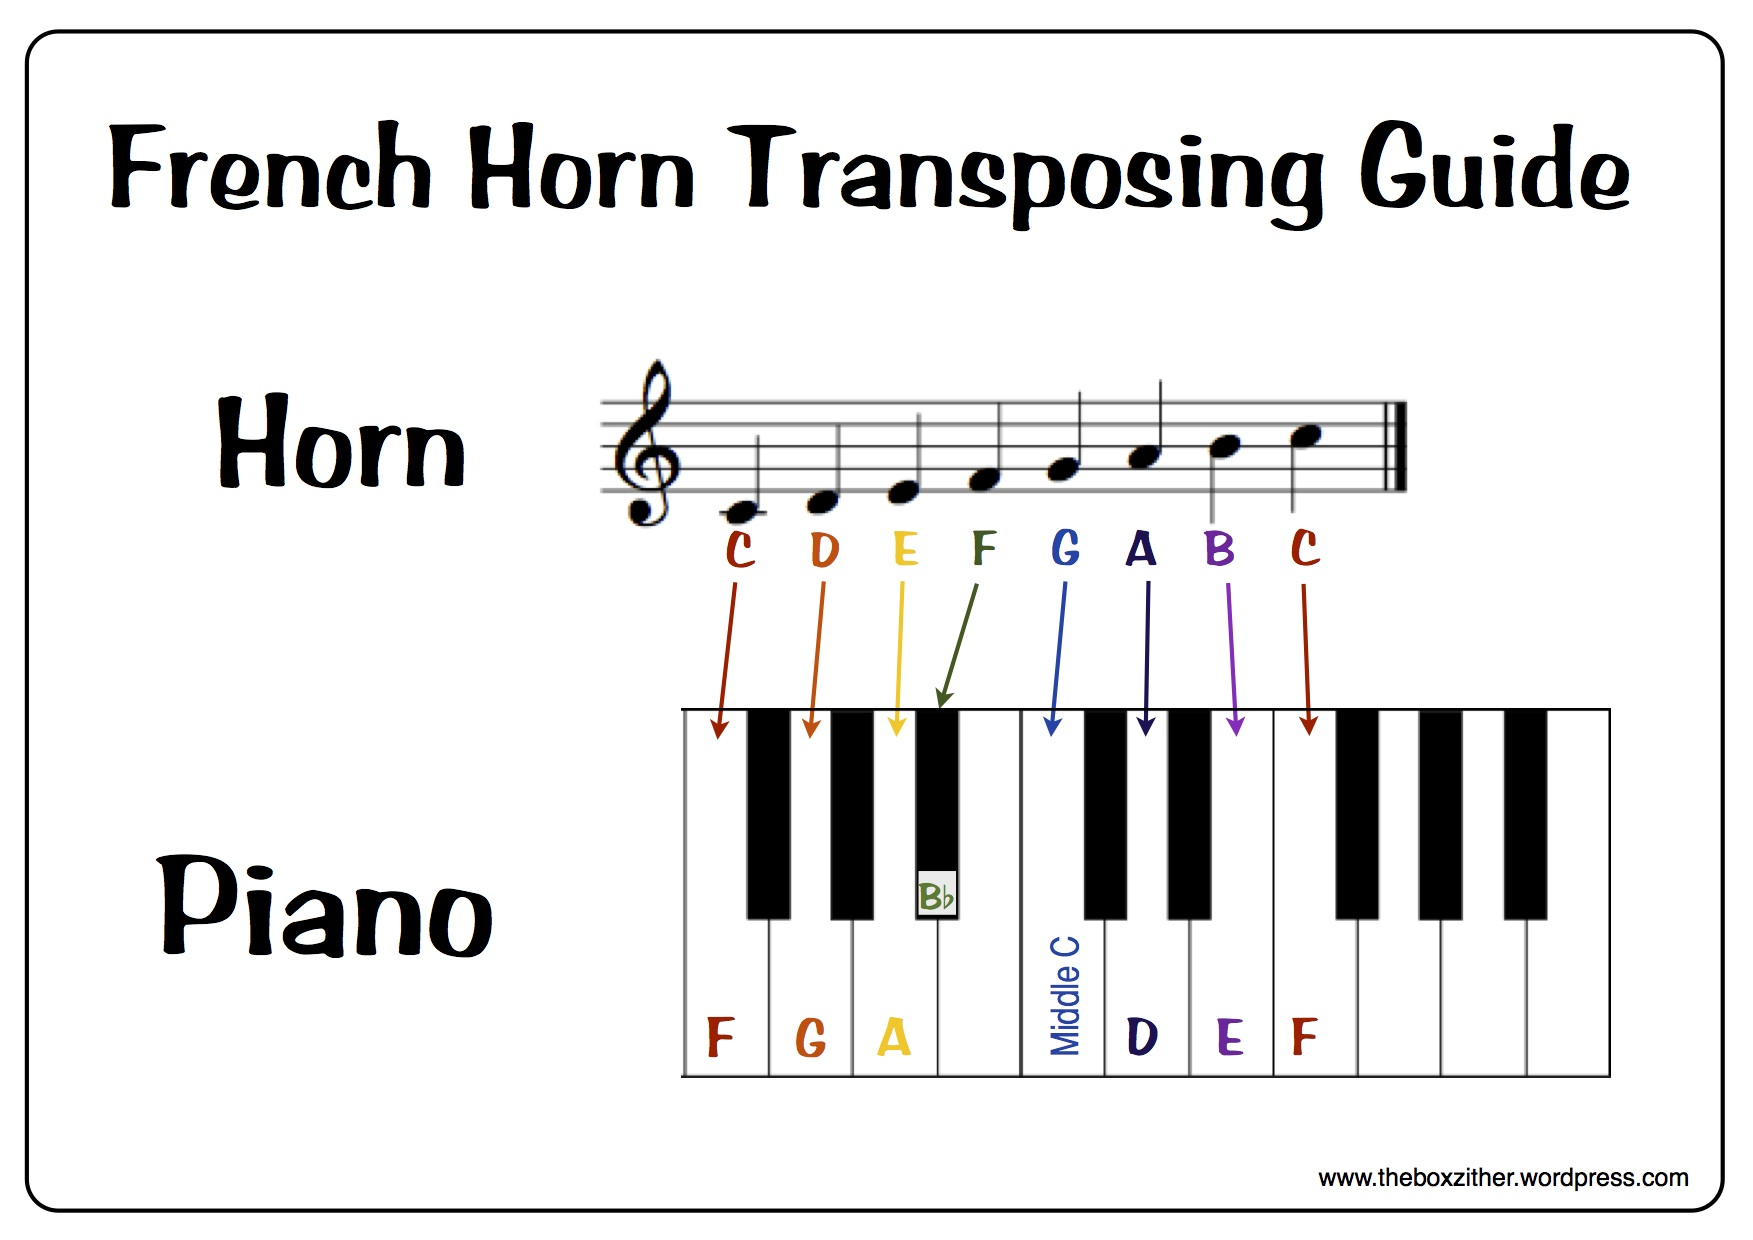 Free download french horn transposing guide the box zither free download french horn transposing guide nvjuhfo Images